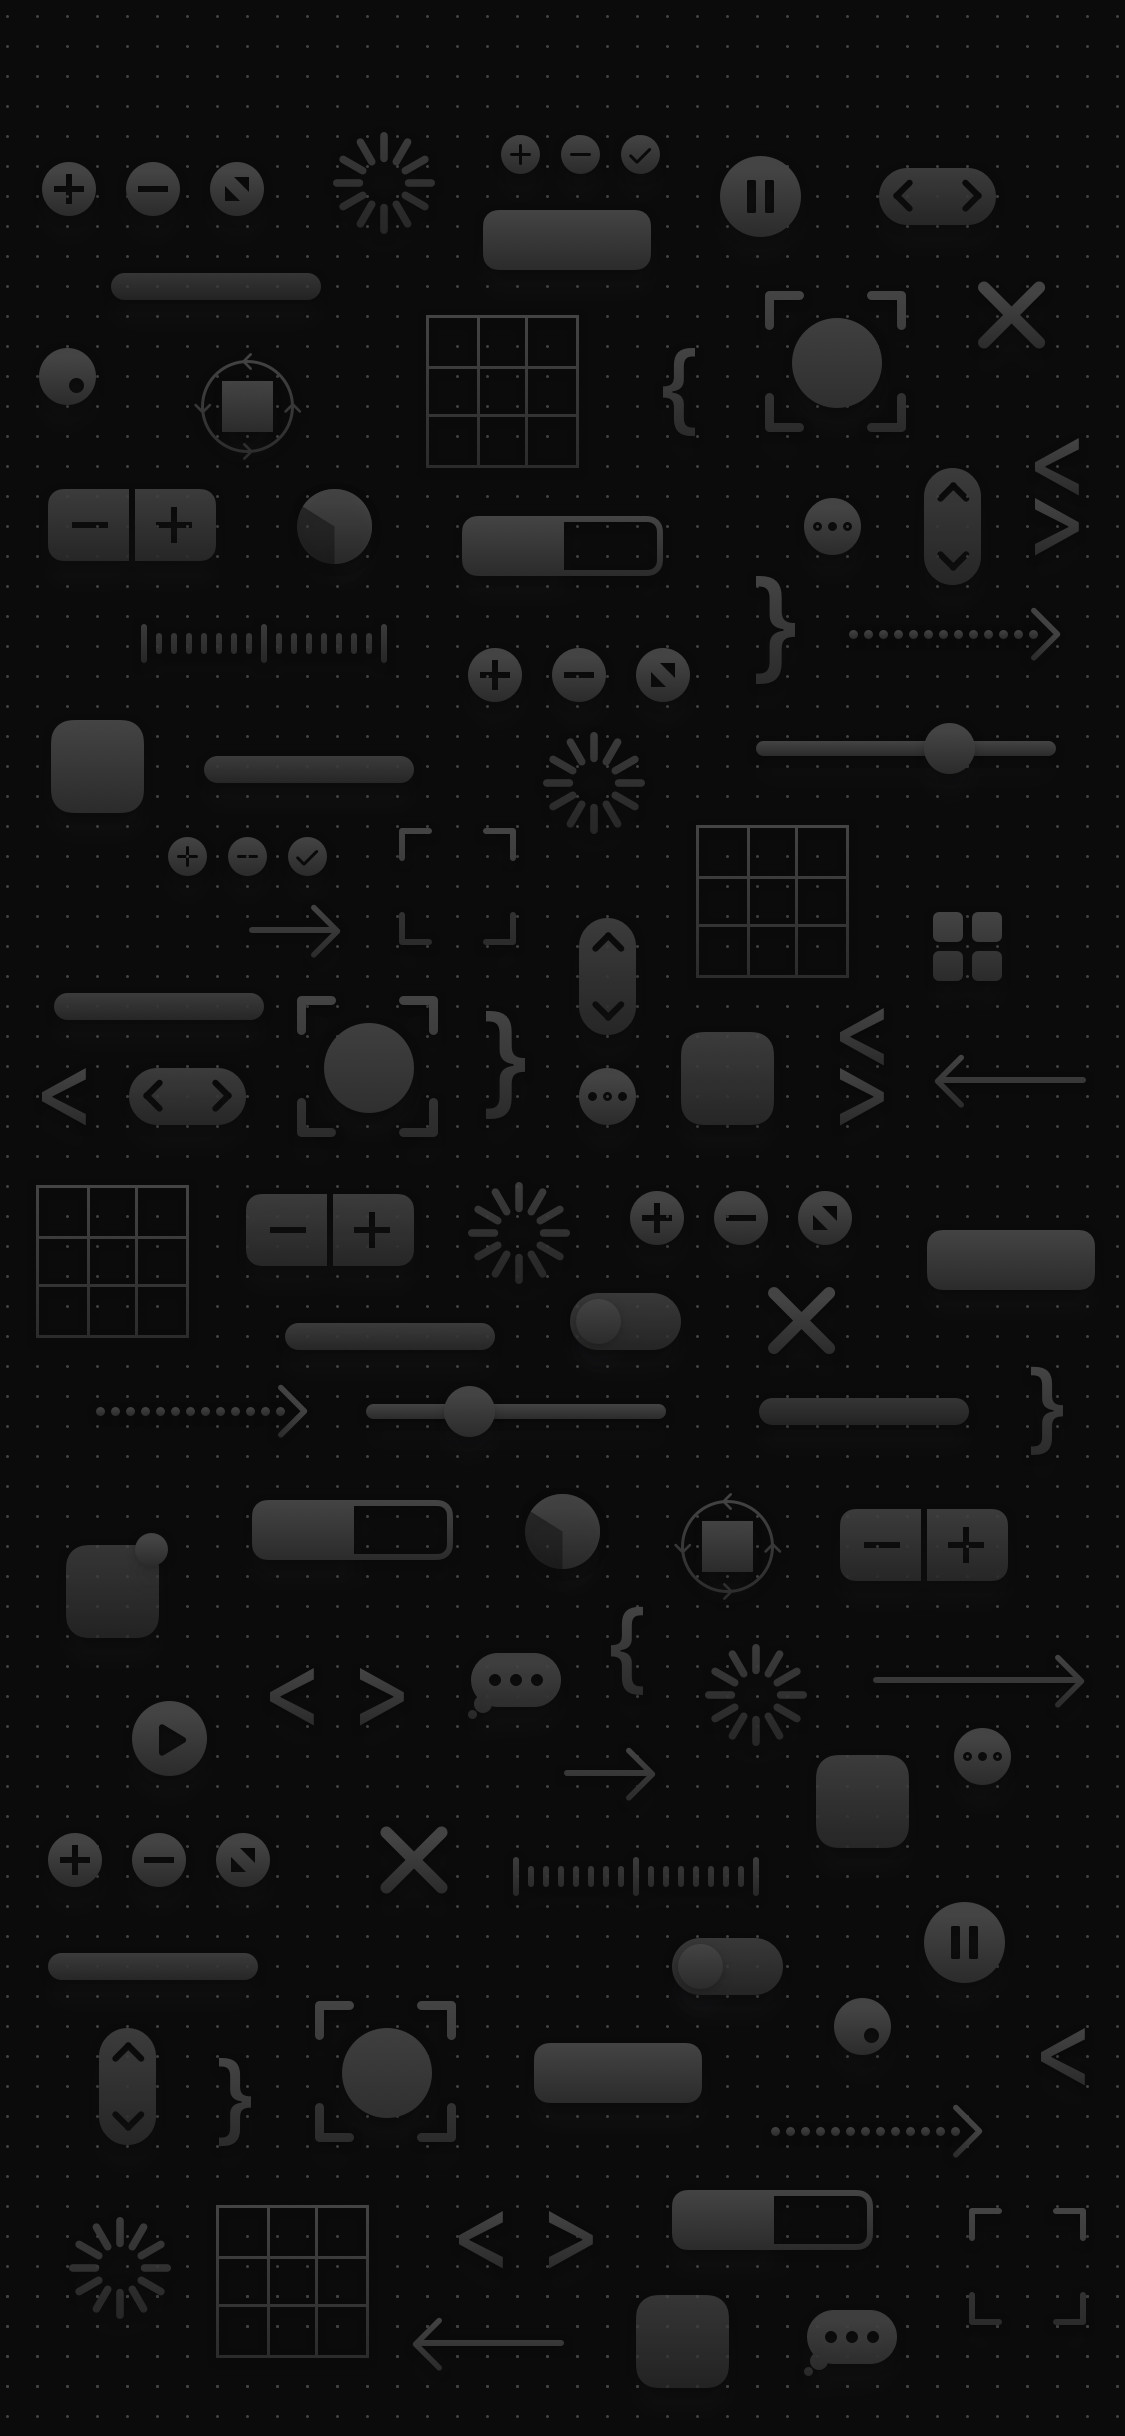 Res: 1125x2436, Download: all dark no logo for iPhone X